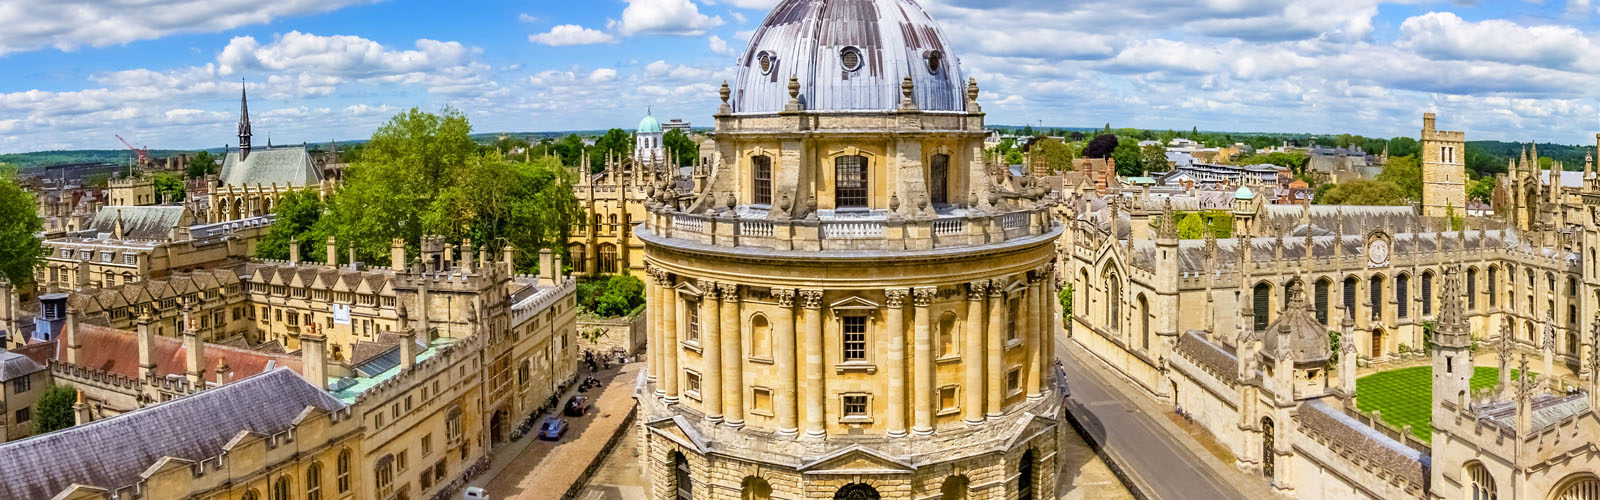 View from a church's tower with the Bodleian Libraryand All Souls College, Oxfordshire.